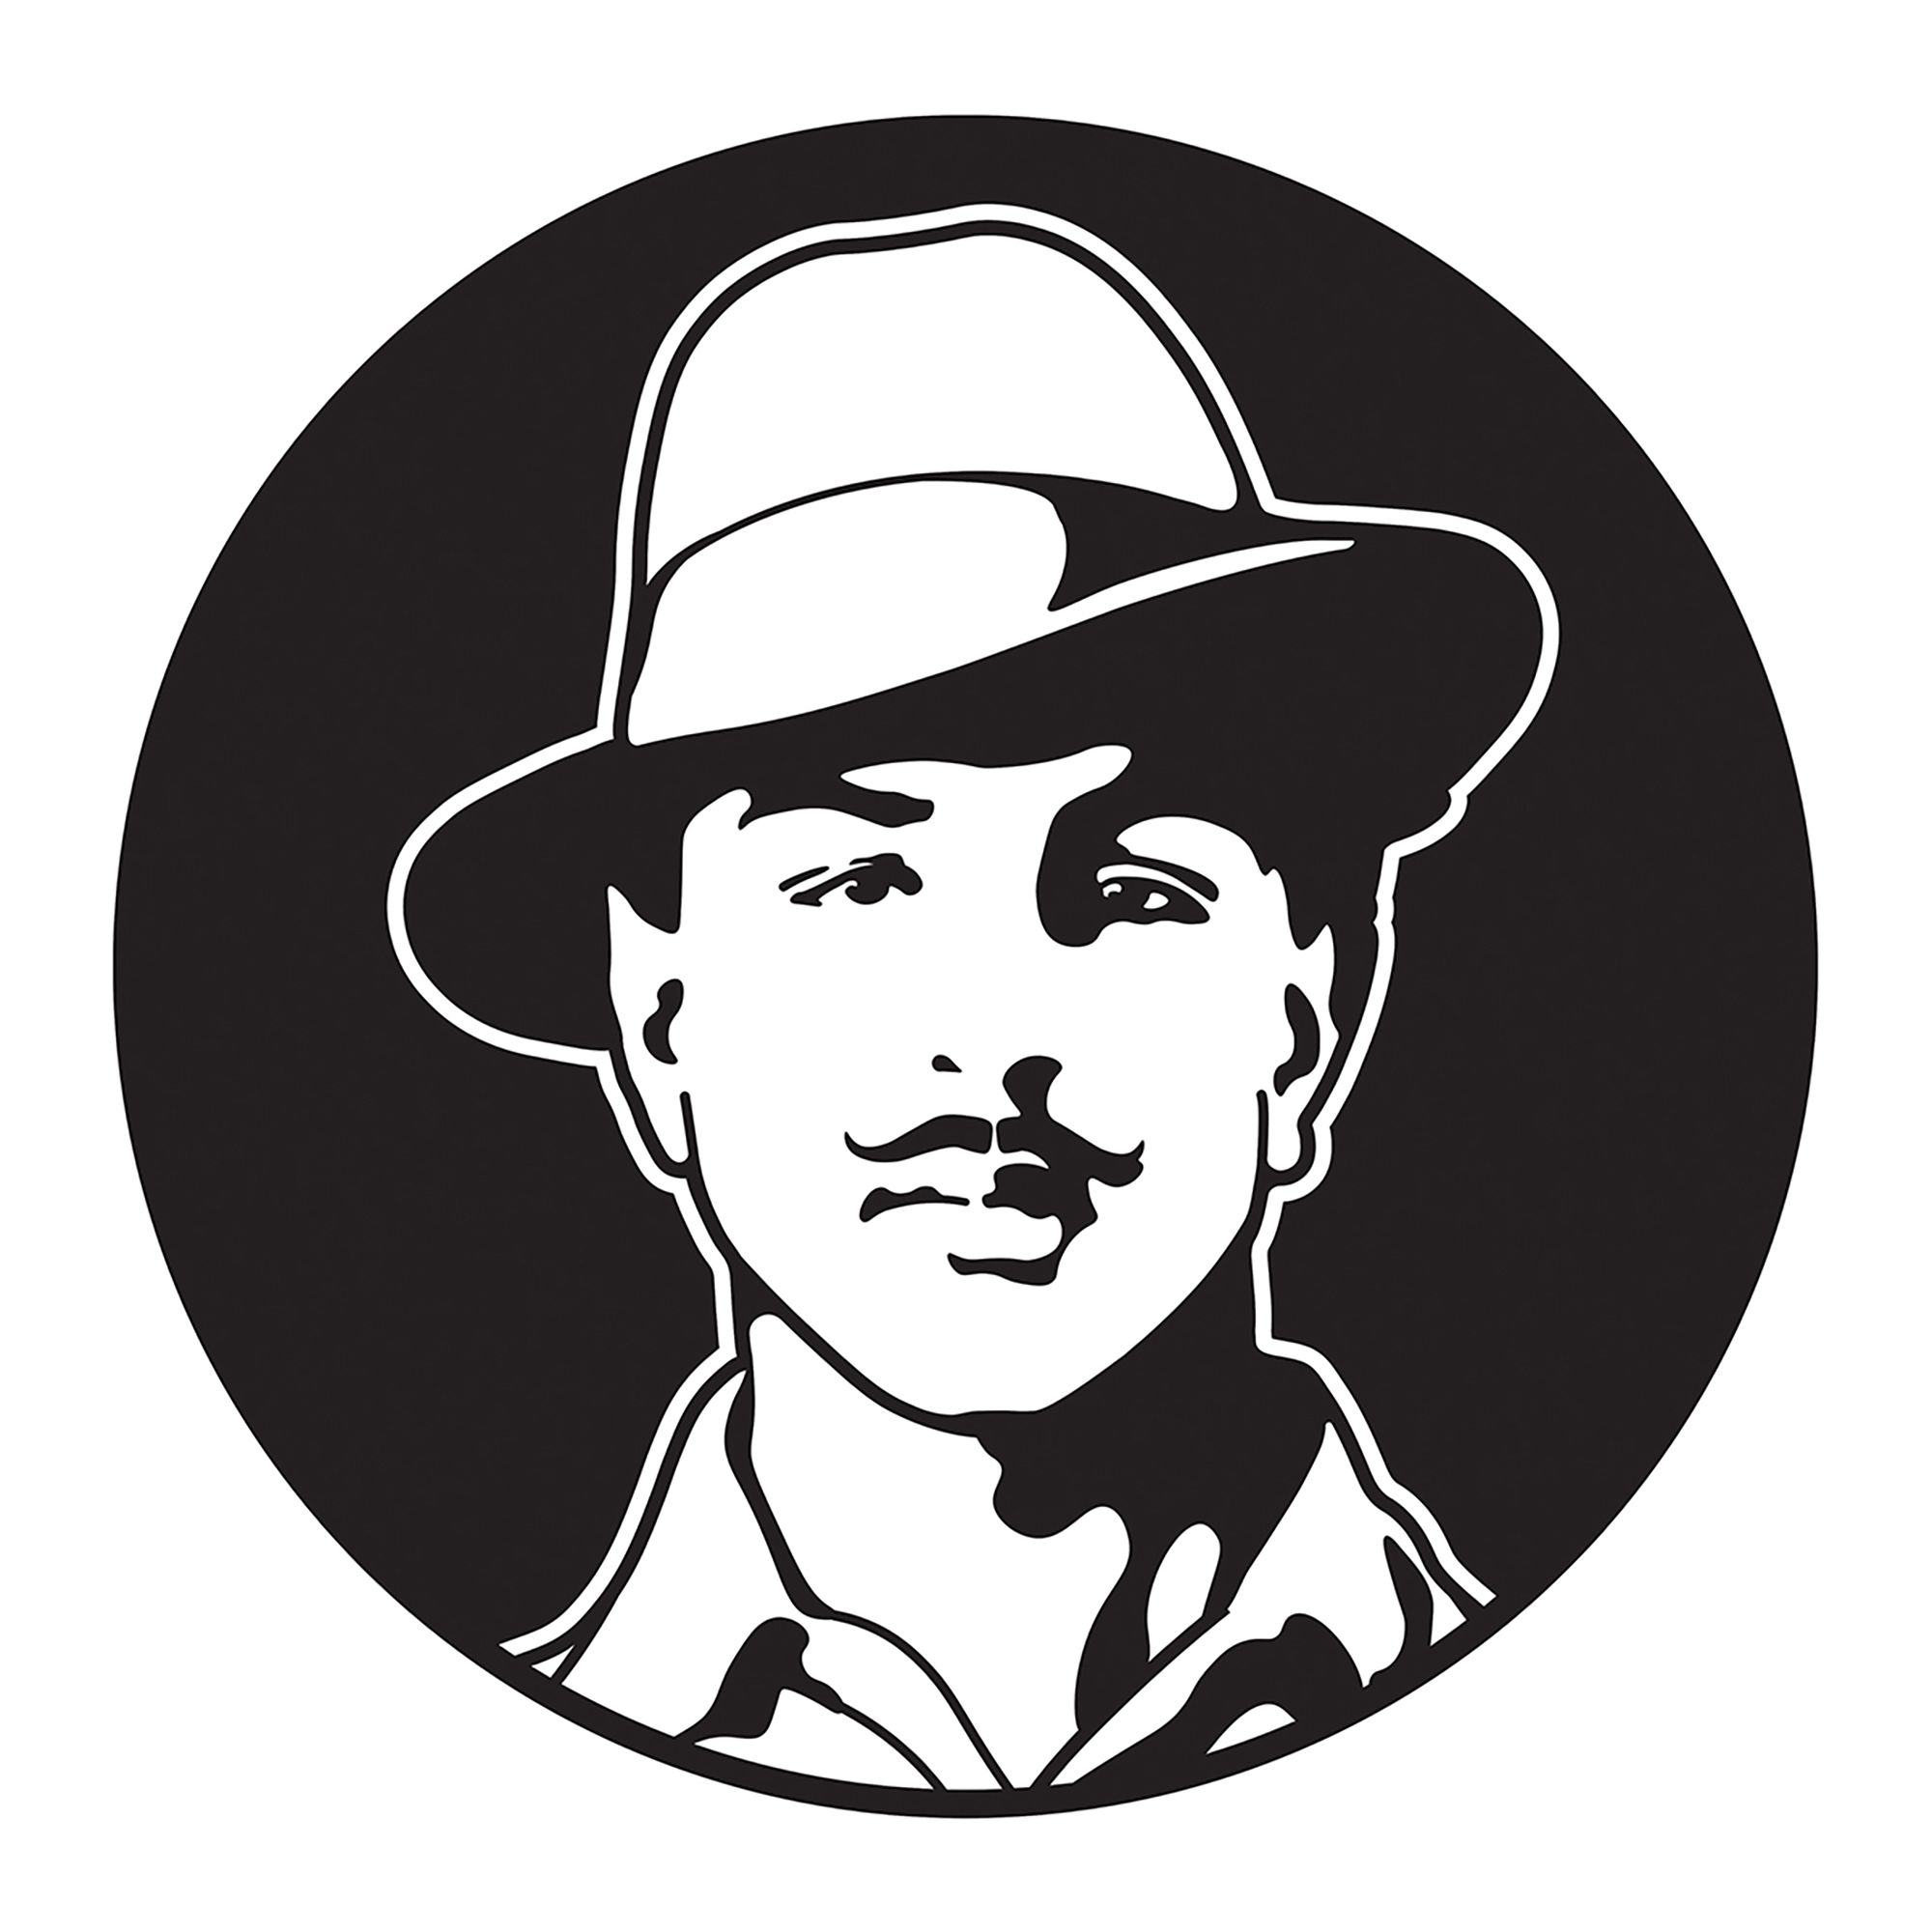 Freedom fighters clipart svg download Bhagat Singh was an Indian revolutionary socialist who was ... svg download